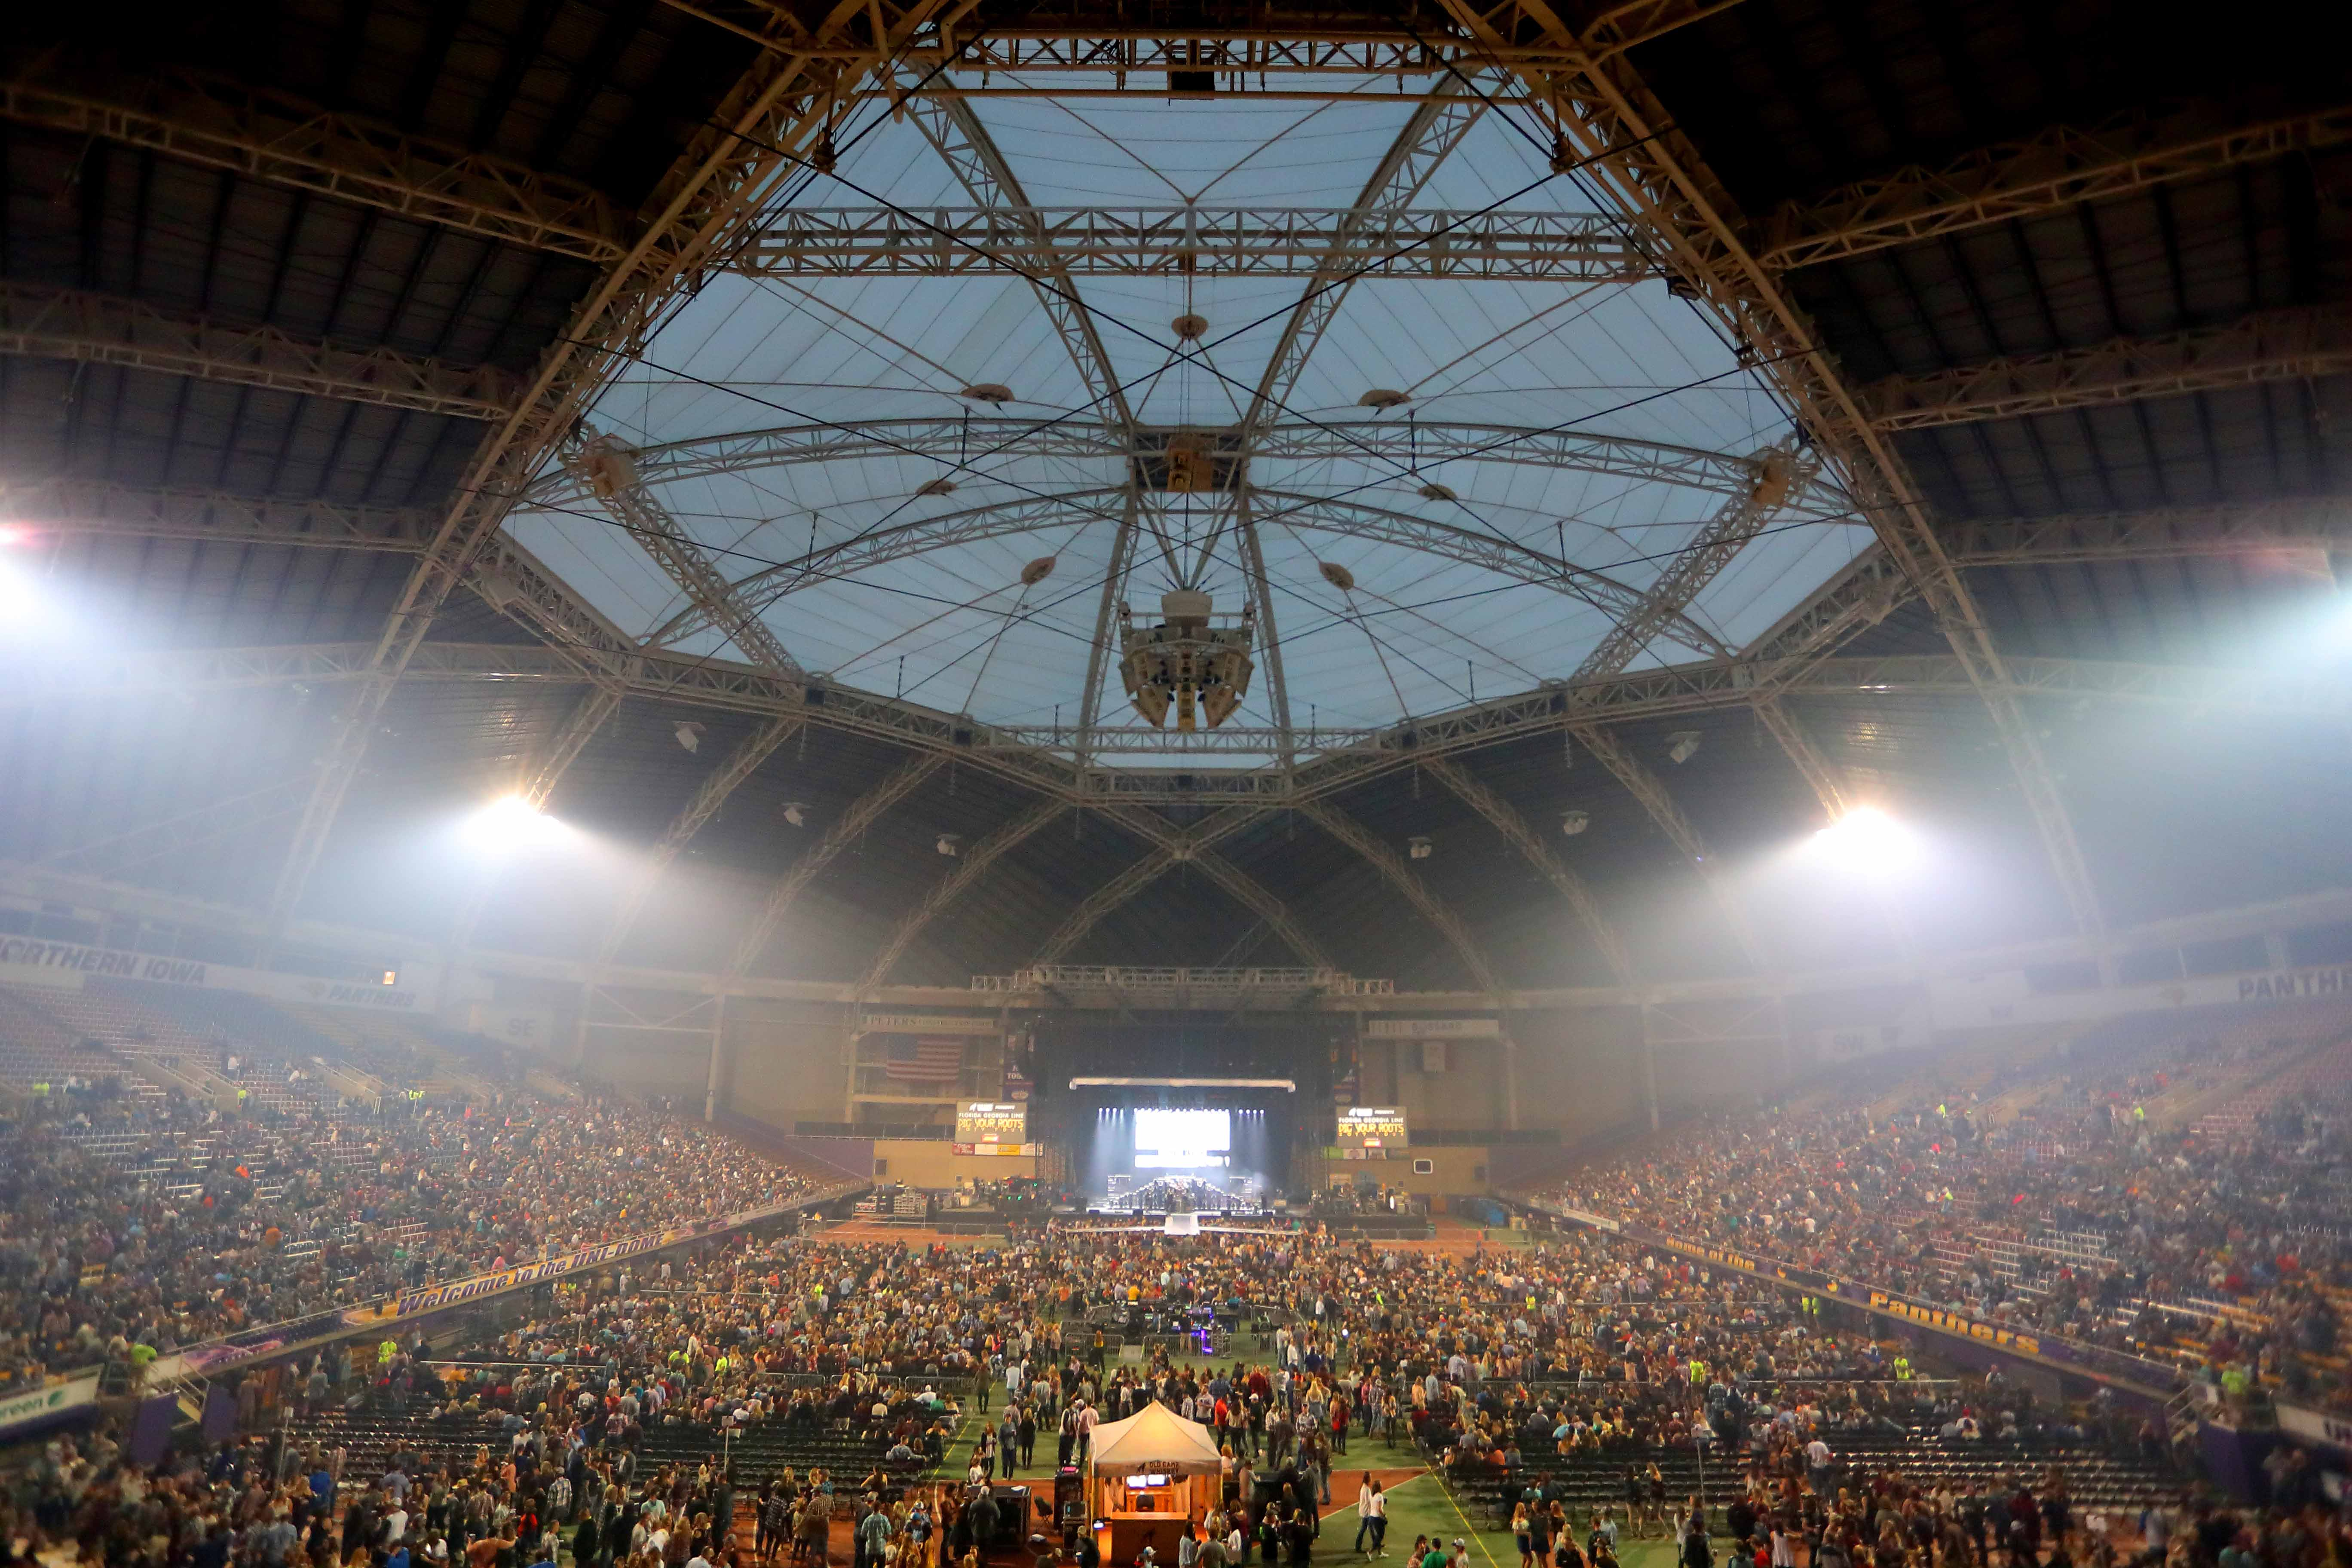 Florida Georgia Line is not the first big name to come to the UNI-Dome, with Luke Bryan's tour stopping at UNI last year.